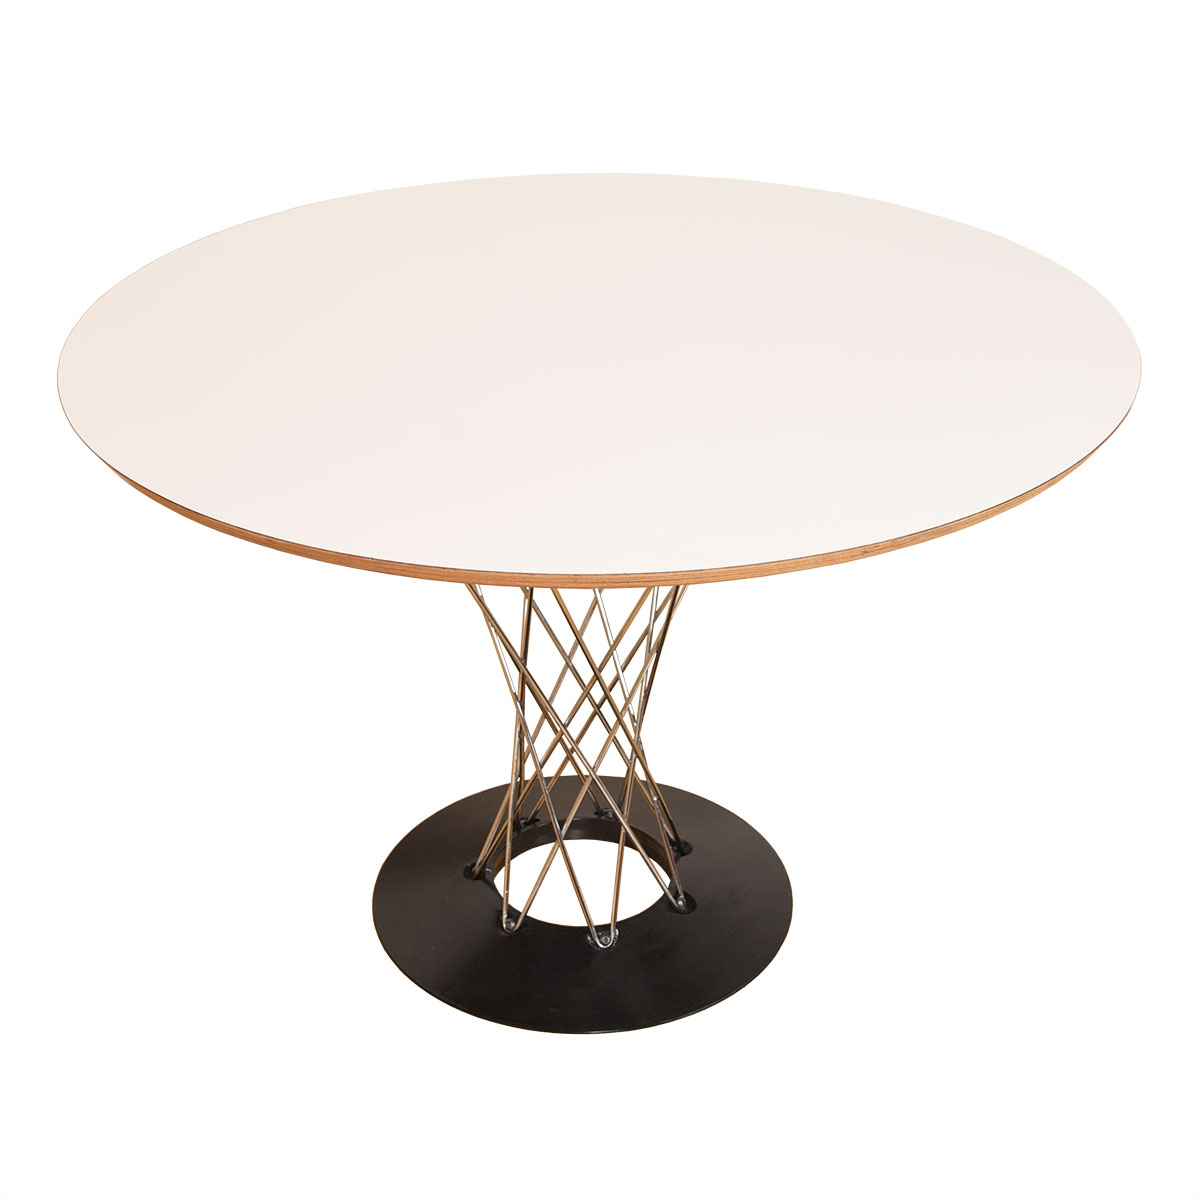 Isamu Noguchi for Knoll 42″ Vintage Cyclone Dining Table